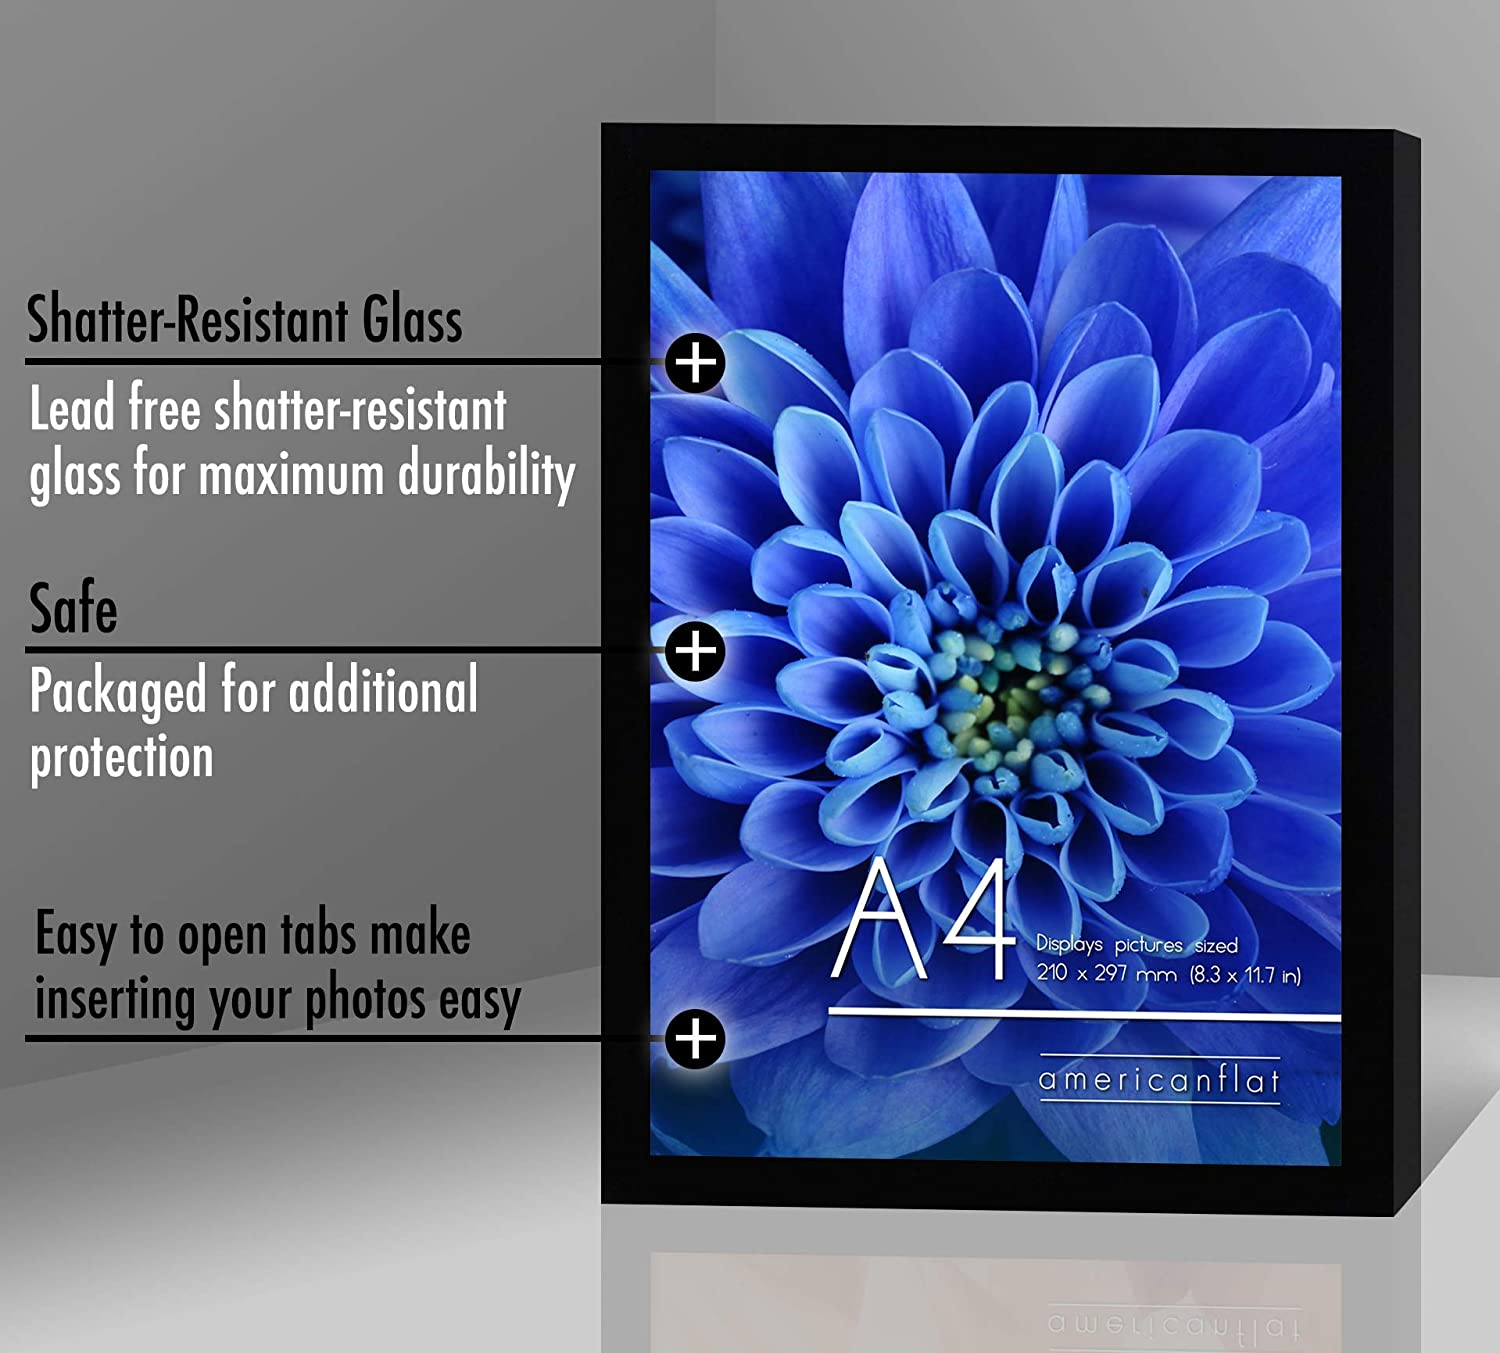 miniature 11 - Americanflat Picture Frame in Black Wood - Shatter Resistant Glass